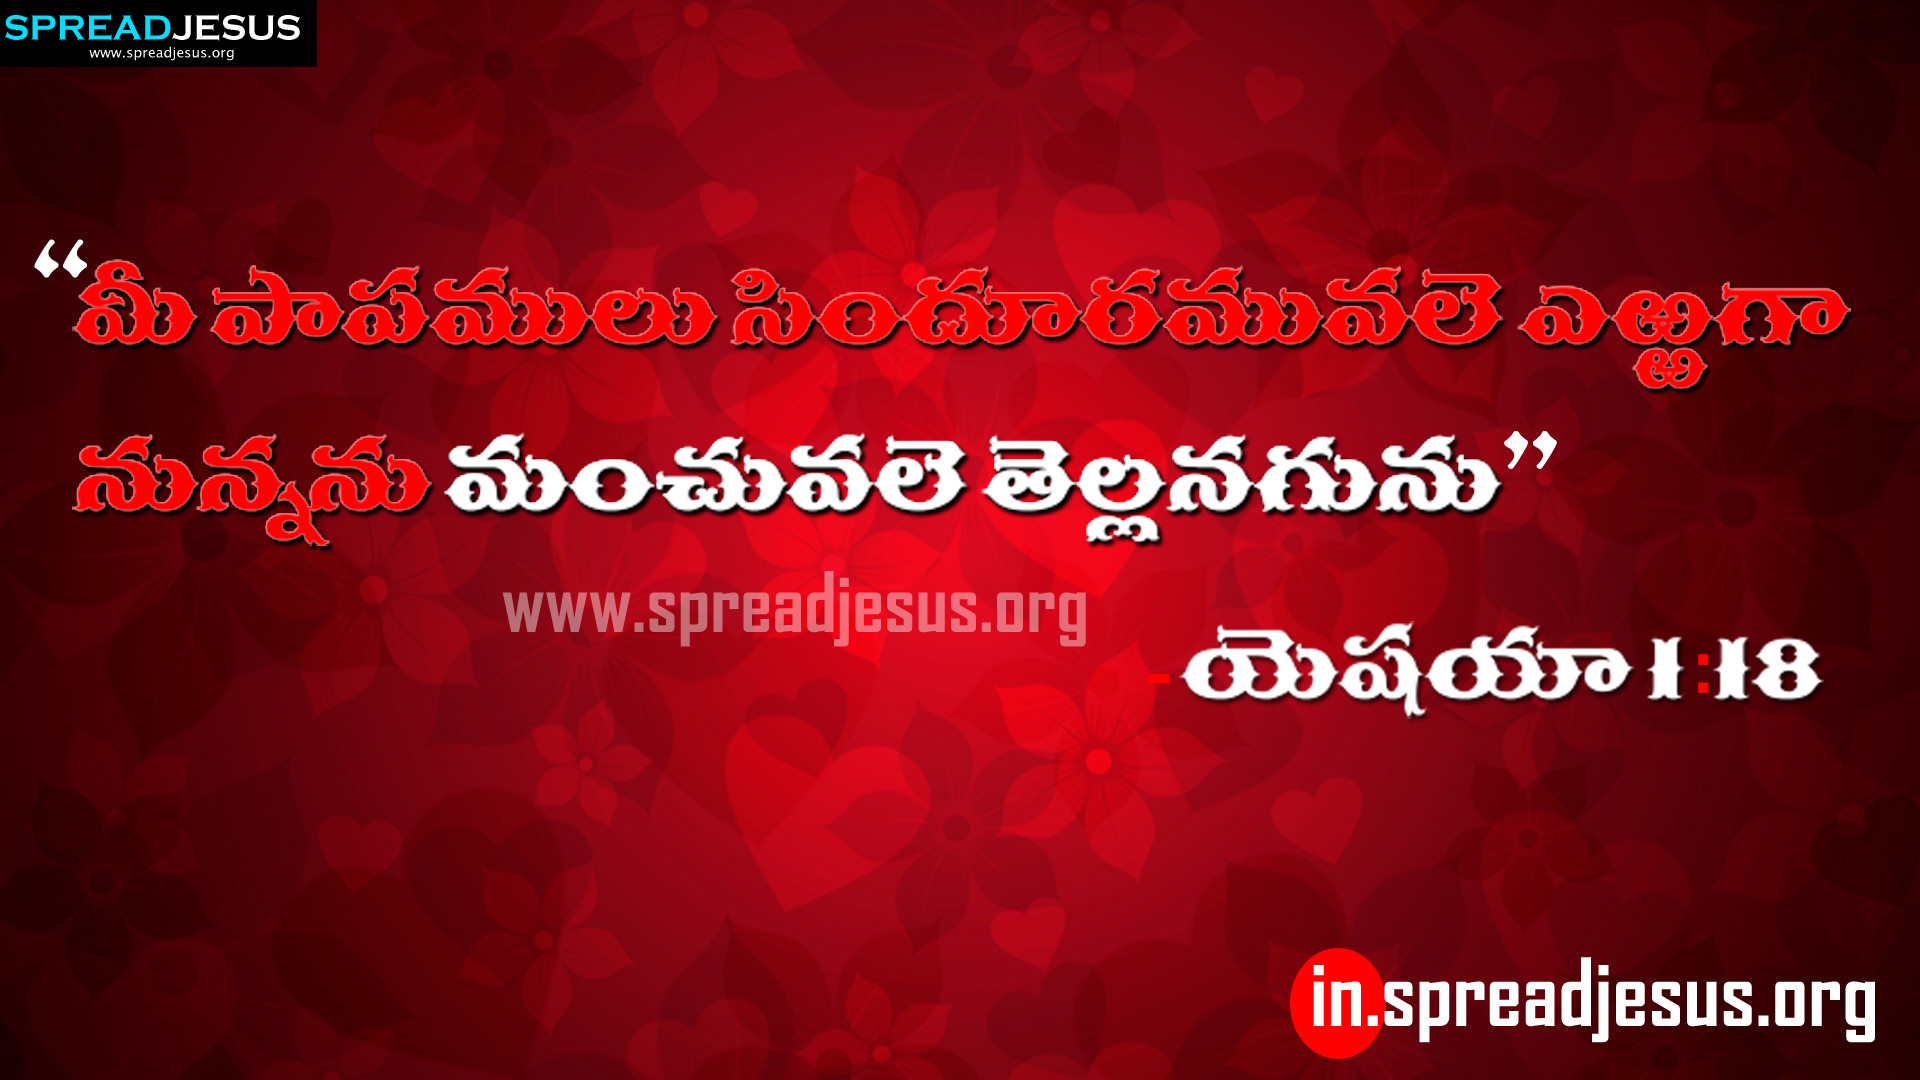 TELUGU BIBLE QUOTES HD-WALLPAPER ISAIAH-1:18-spreadjesus.org,TELUGU BIBLE QUOTES HD-WALLPAPER ISAIAH-1:18 DOWNLOAD